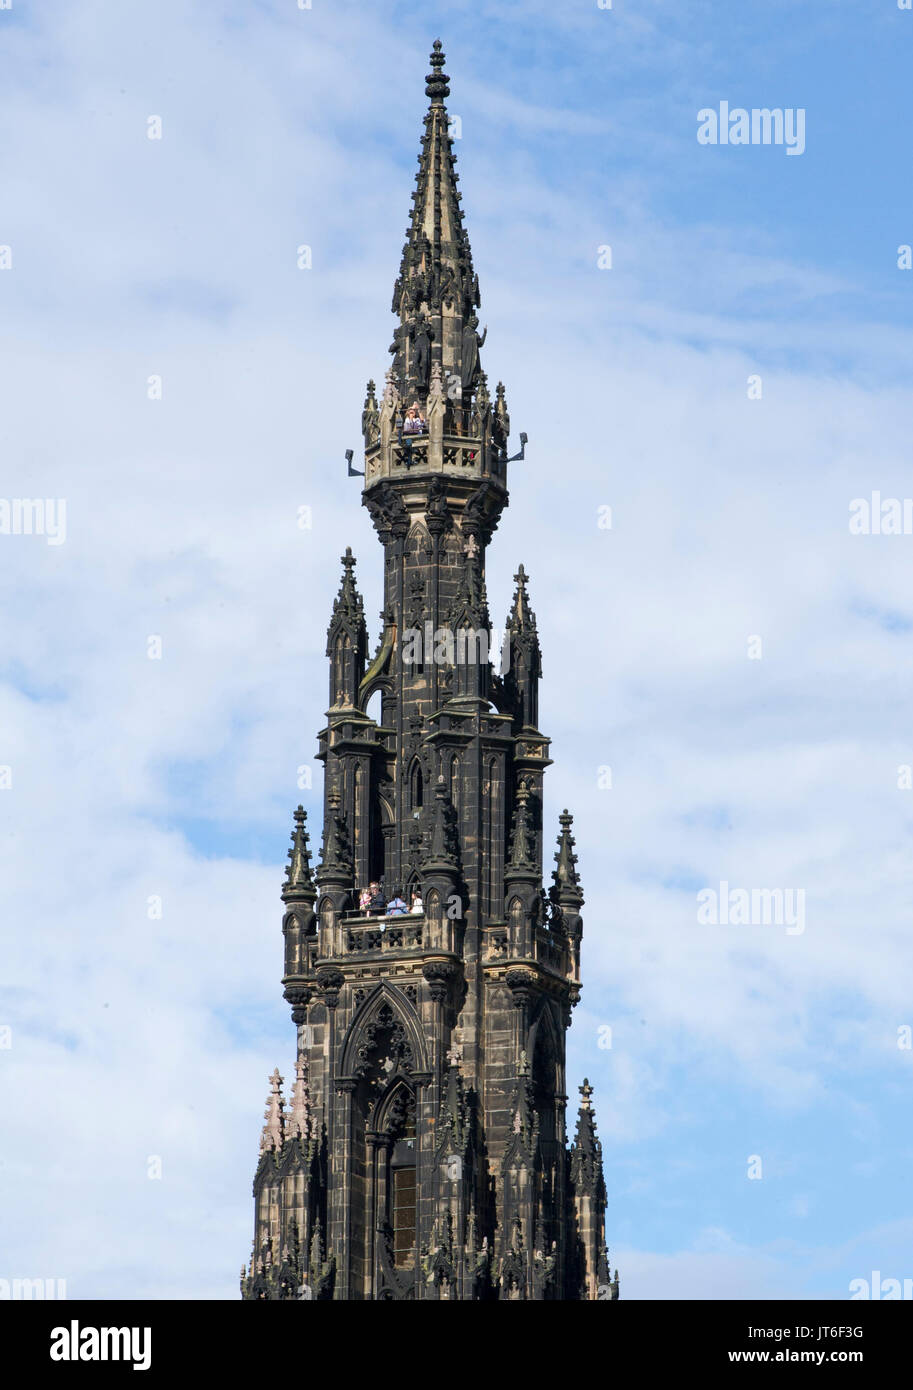 The top of Scott Monument in Edinburgh city centre. The Scott Monument is a Victorian Gothic monument to Scottish author Sir Walter Scott. Stock Photo